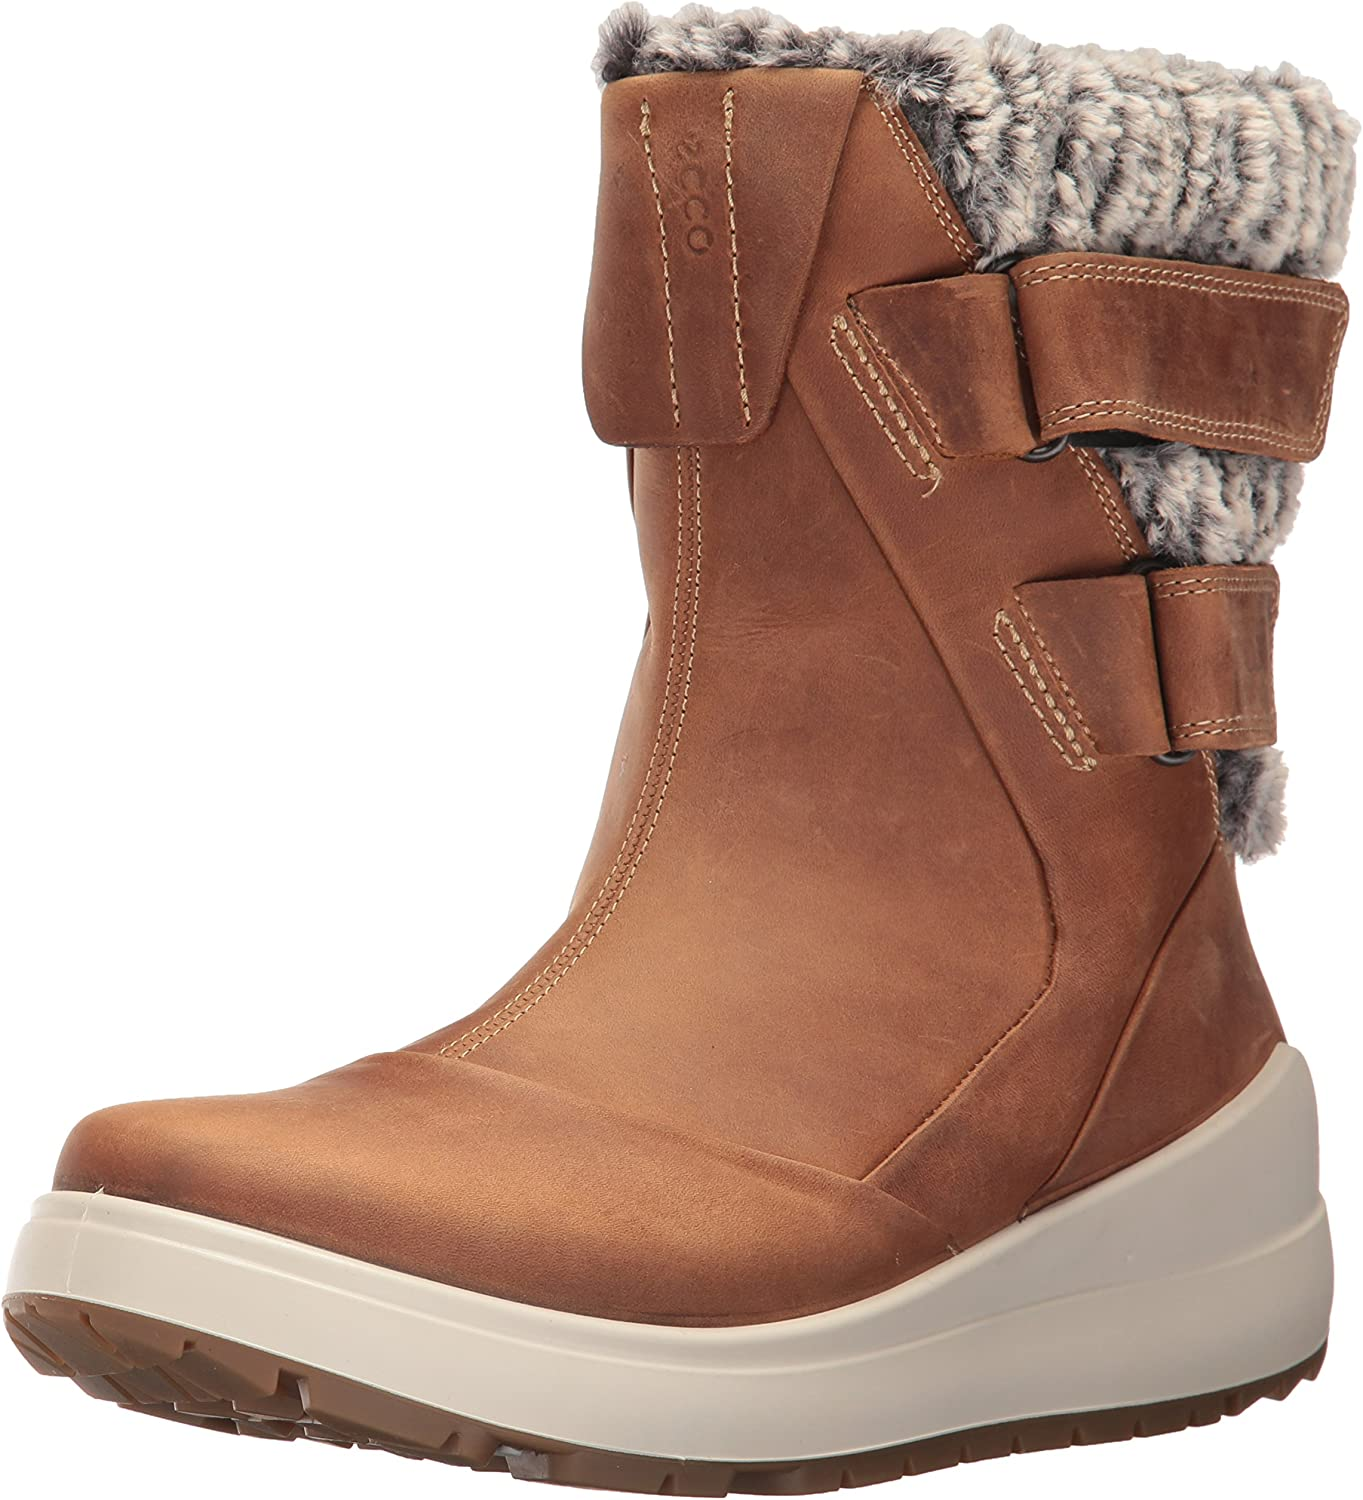 ECCO Womens Noyce Mid Boot Snow Boots